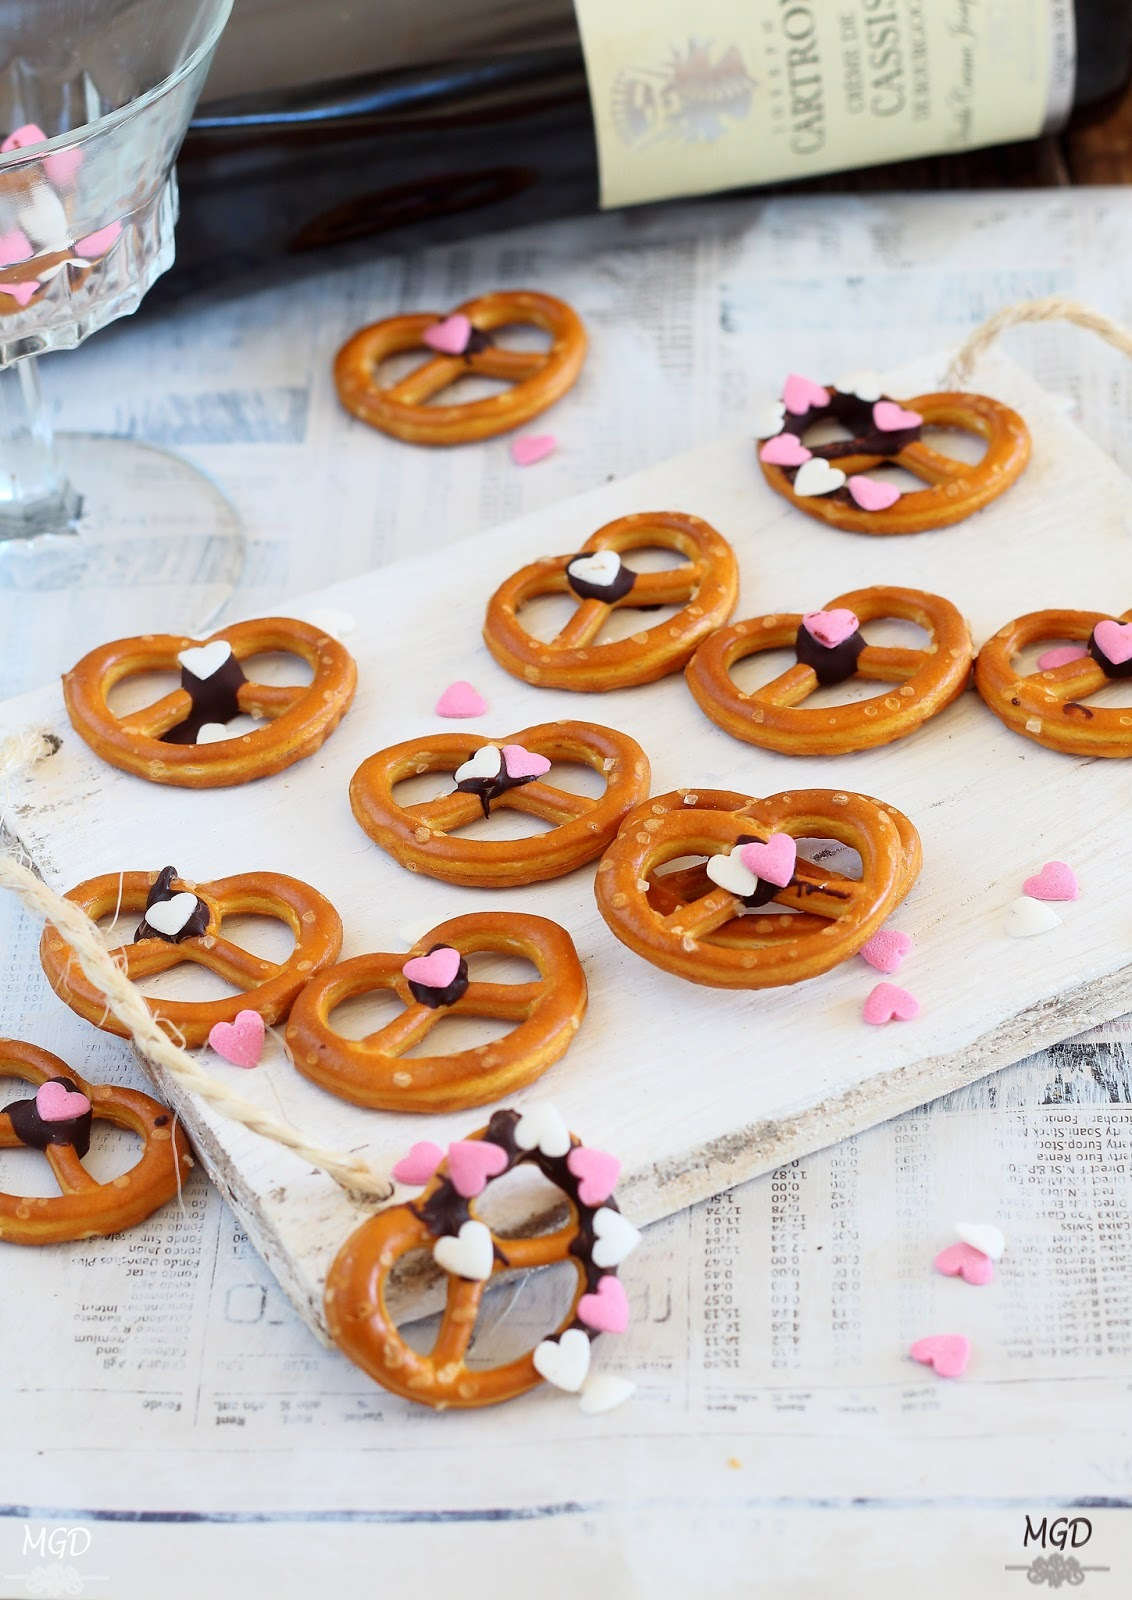 Galletas Pretzel con chocolate - San Valentin